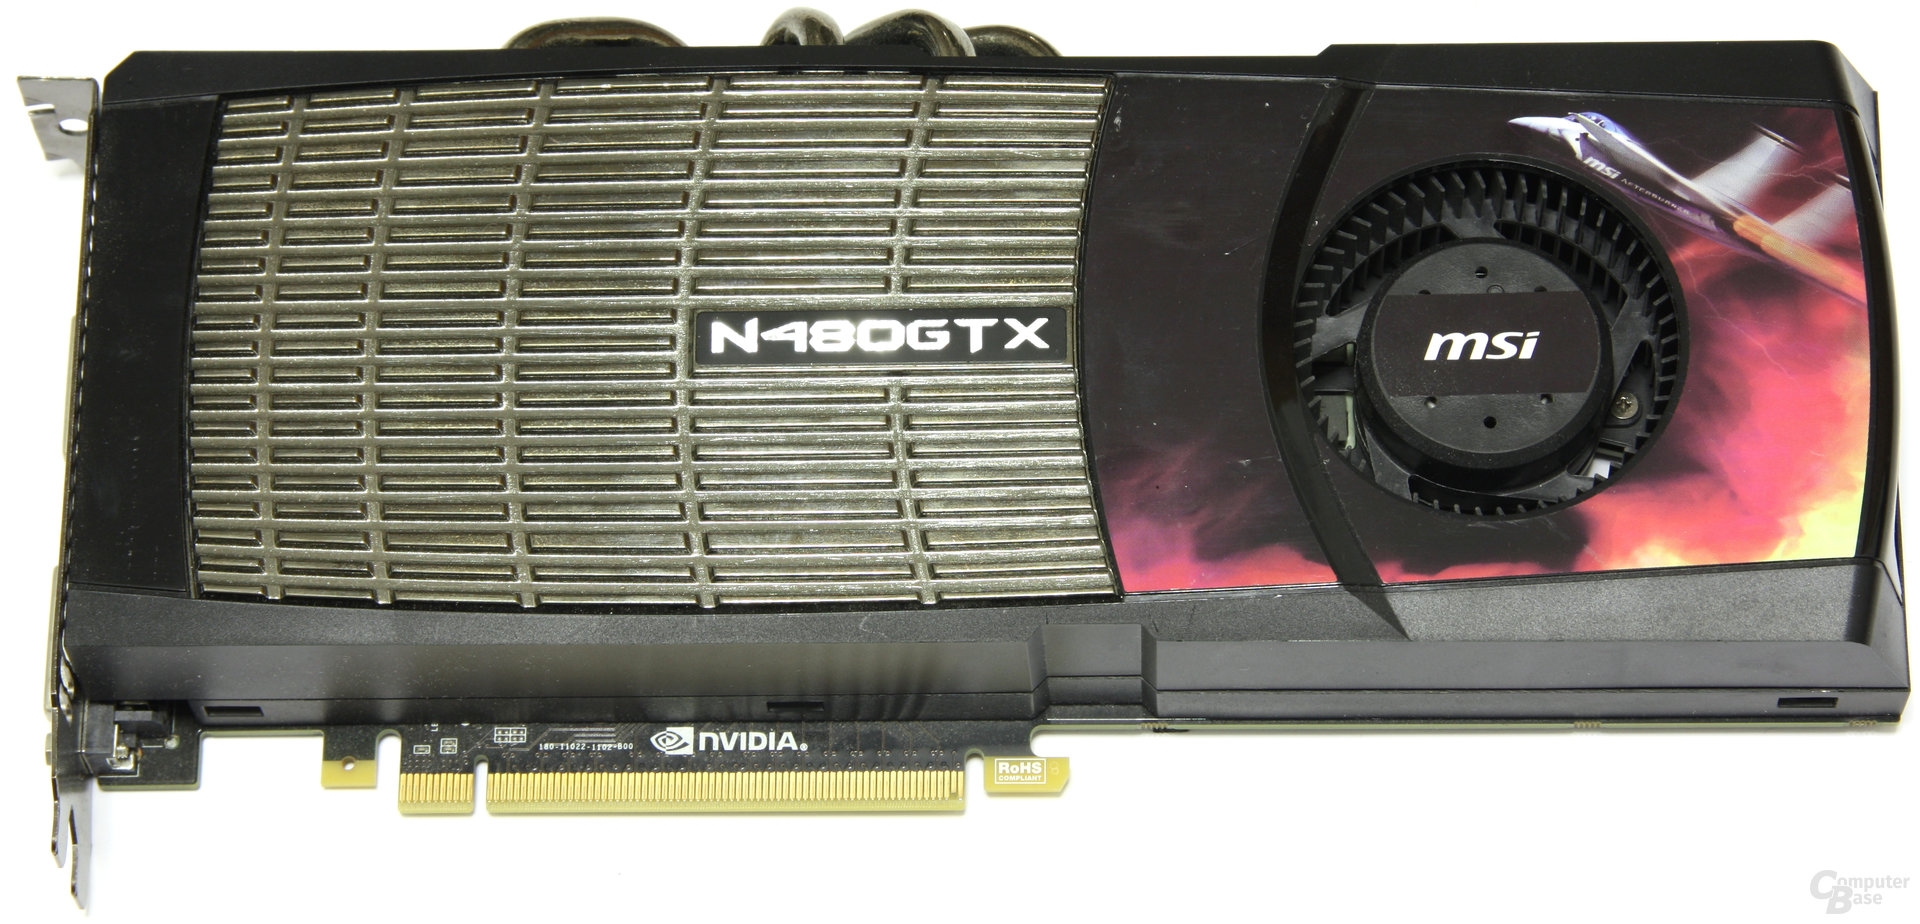 Nvidia GeForce GTX 480 (2010)